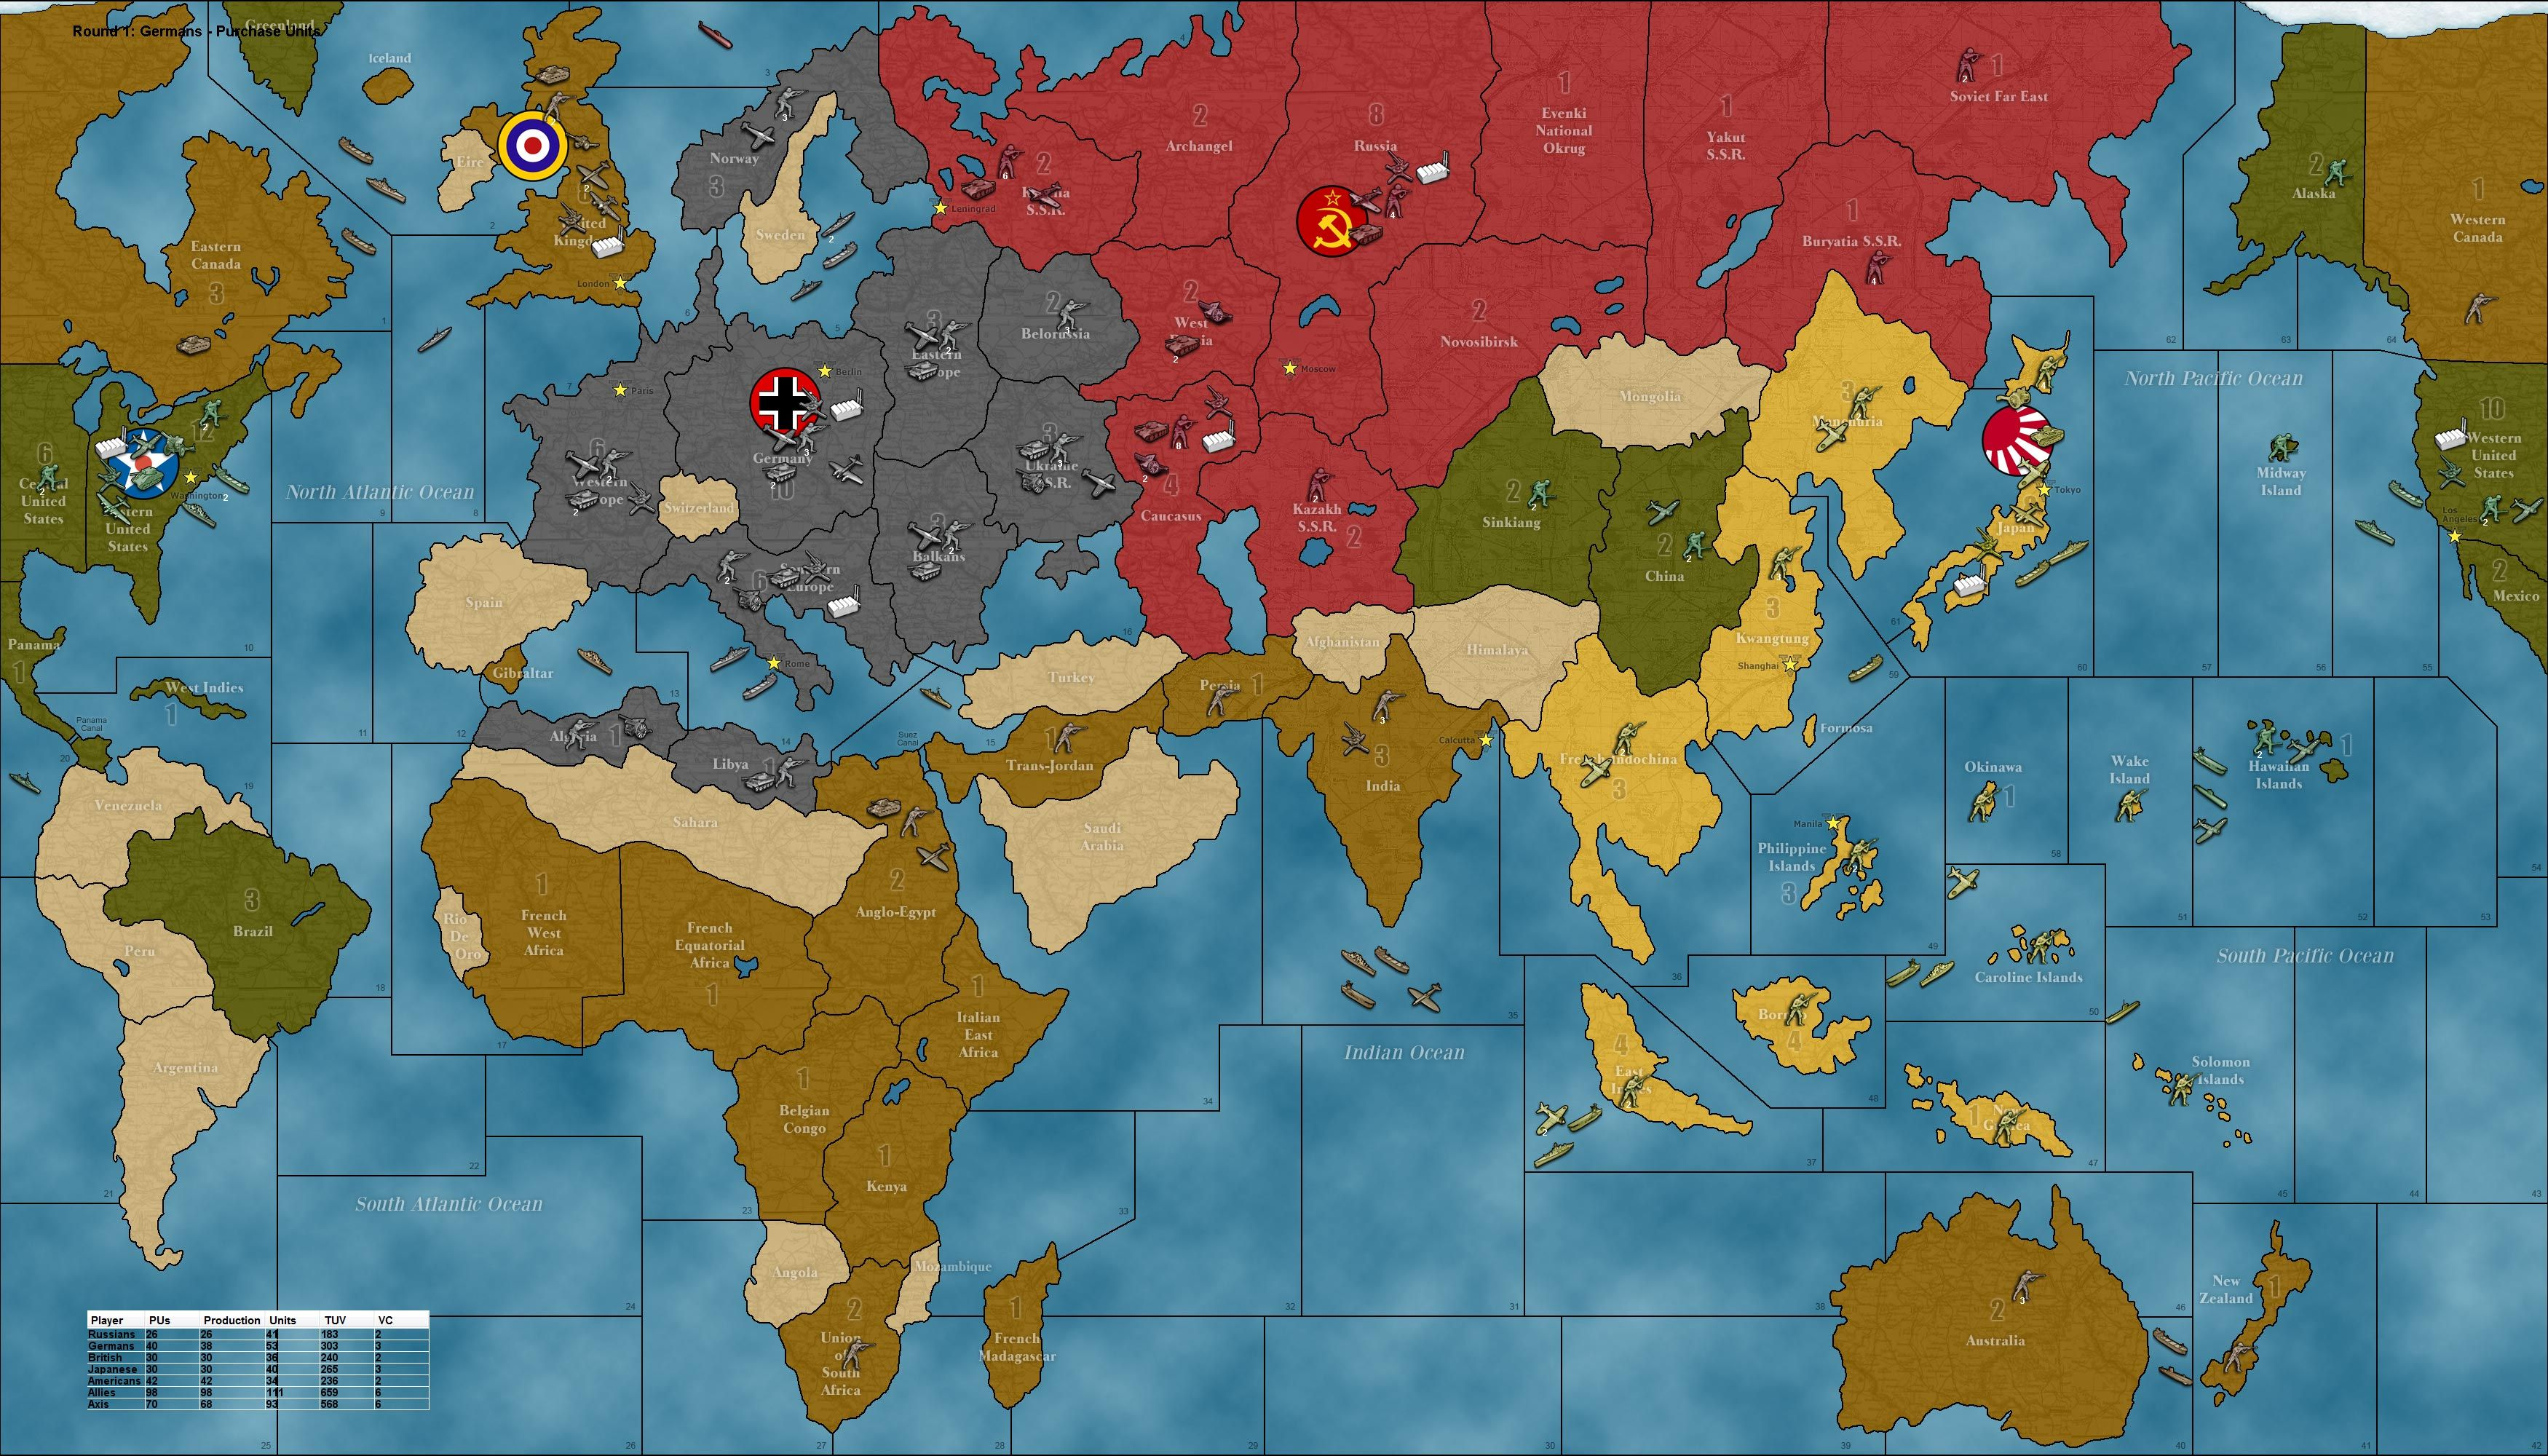 Axis And Allies Board Game invited! Punch was served